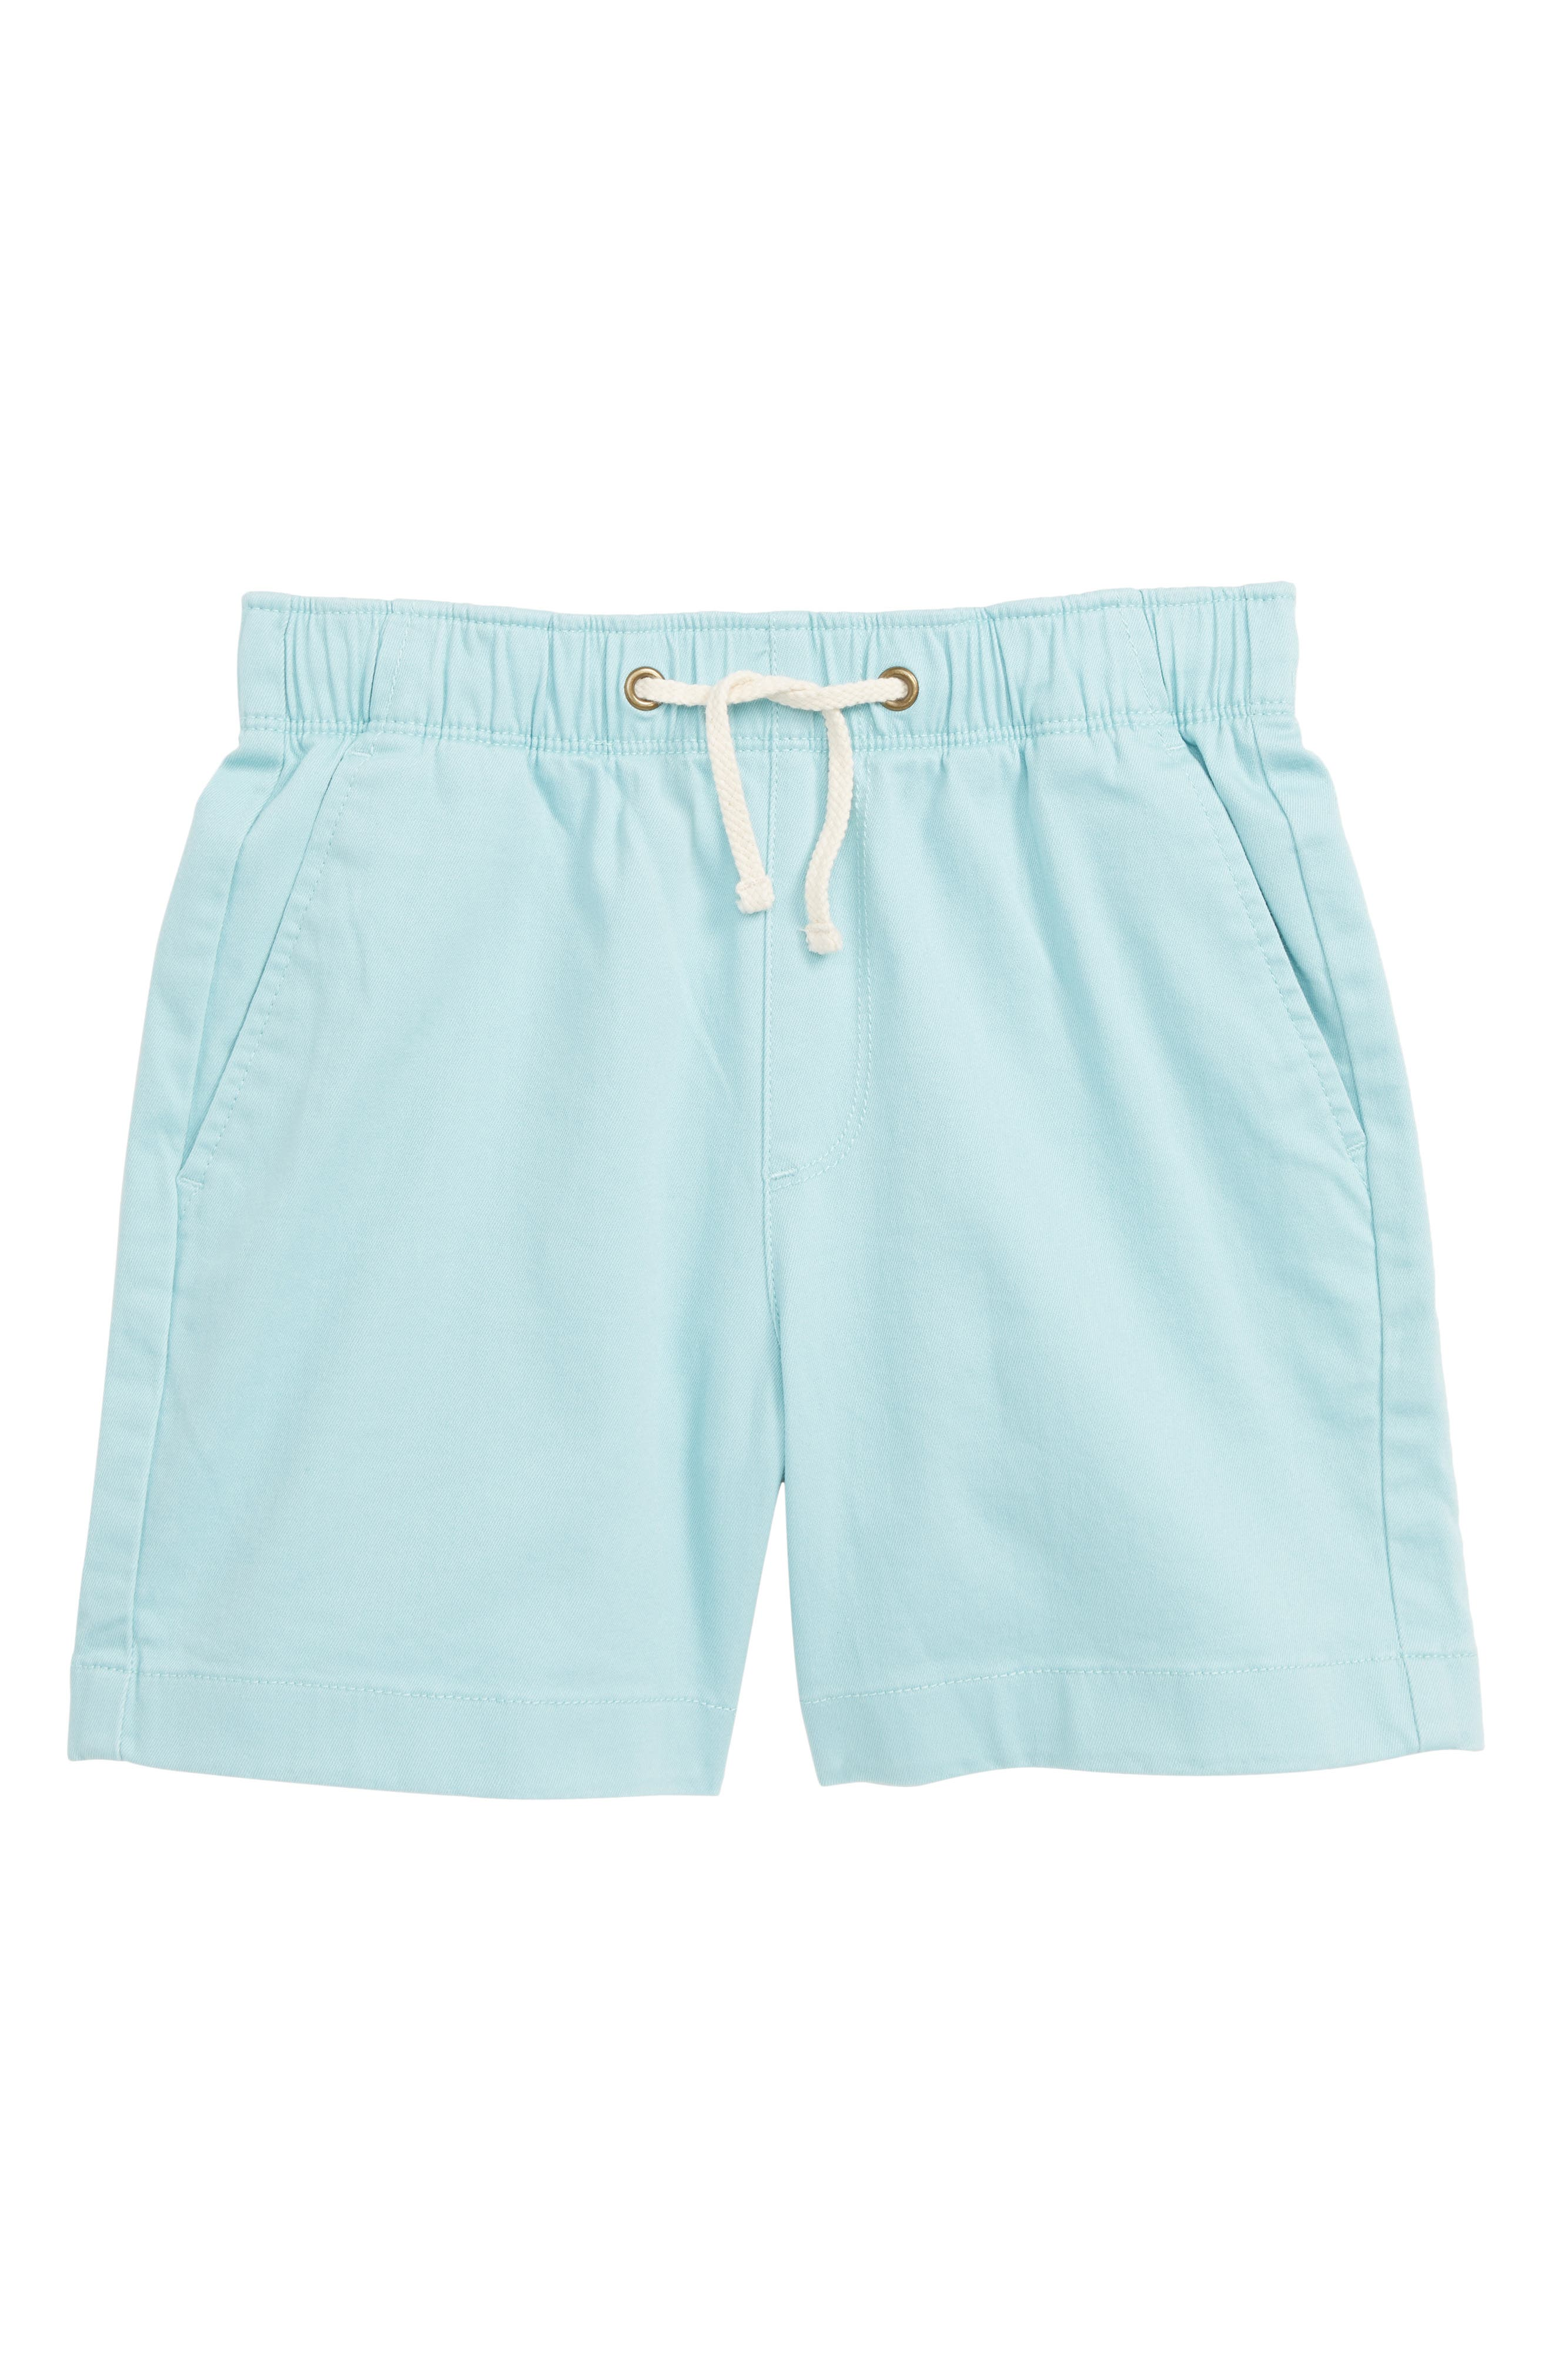 CREWCUTS BY J.CREW,                             Stretch Chino Dock Shorts,                             Main thumbnail 1, color,                             DEEP SPEARMINT